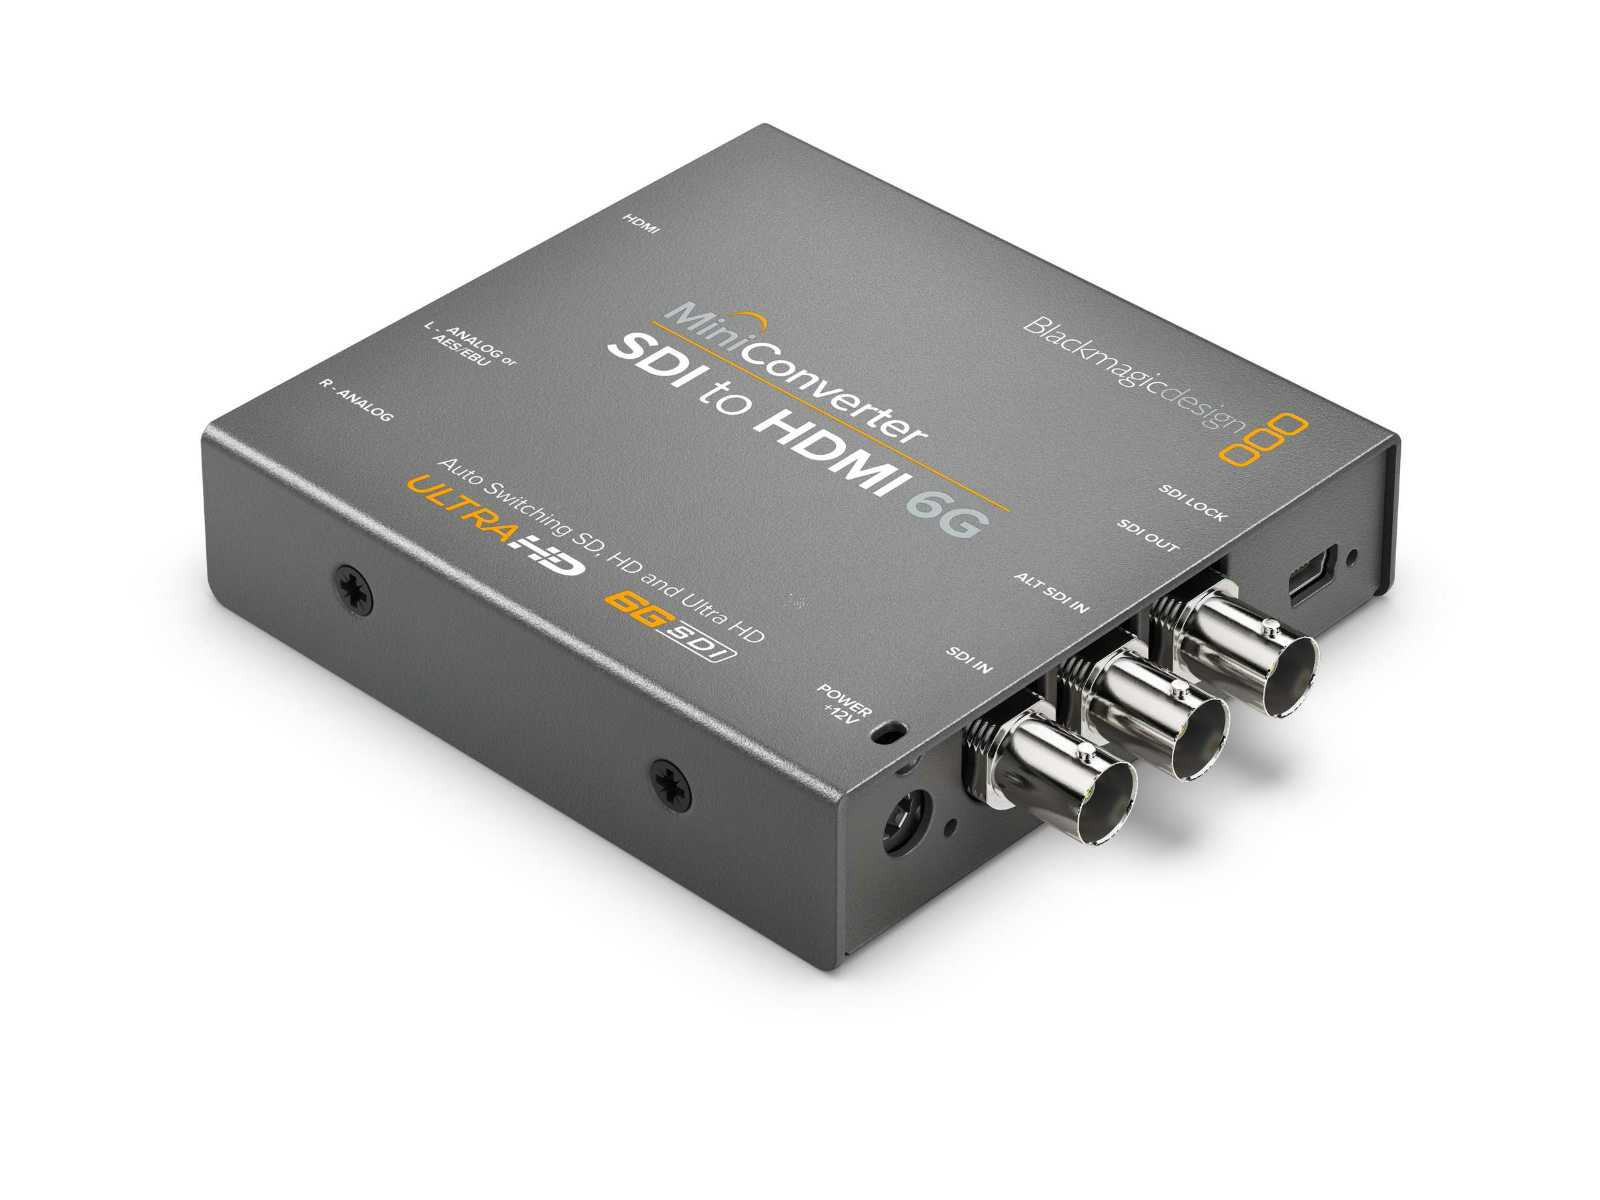 Mini Converter - SDI to HDMI 6G 蝺刻?嚗�A14372